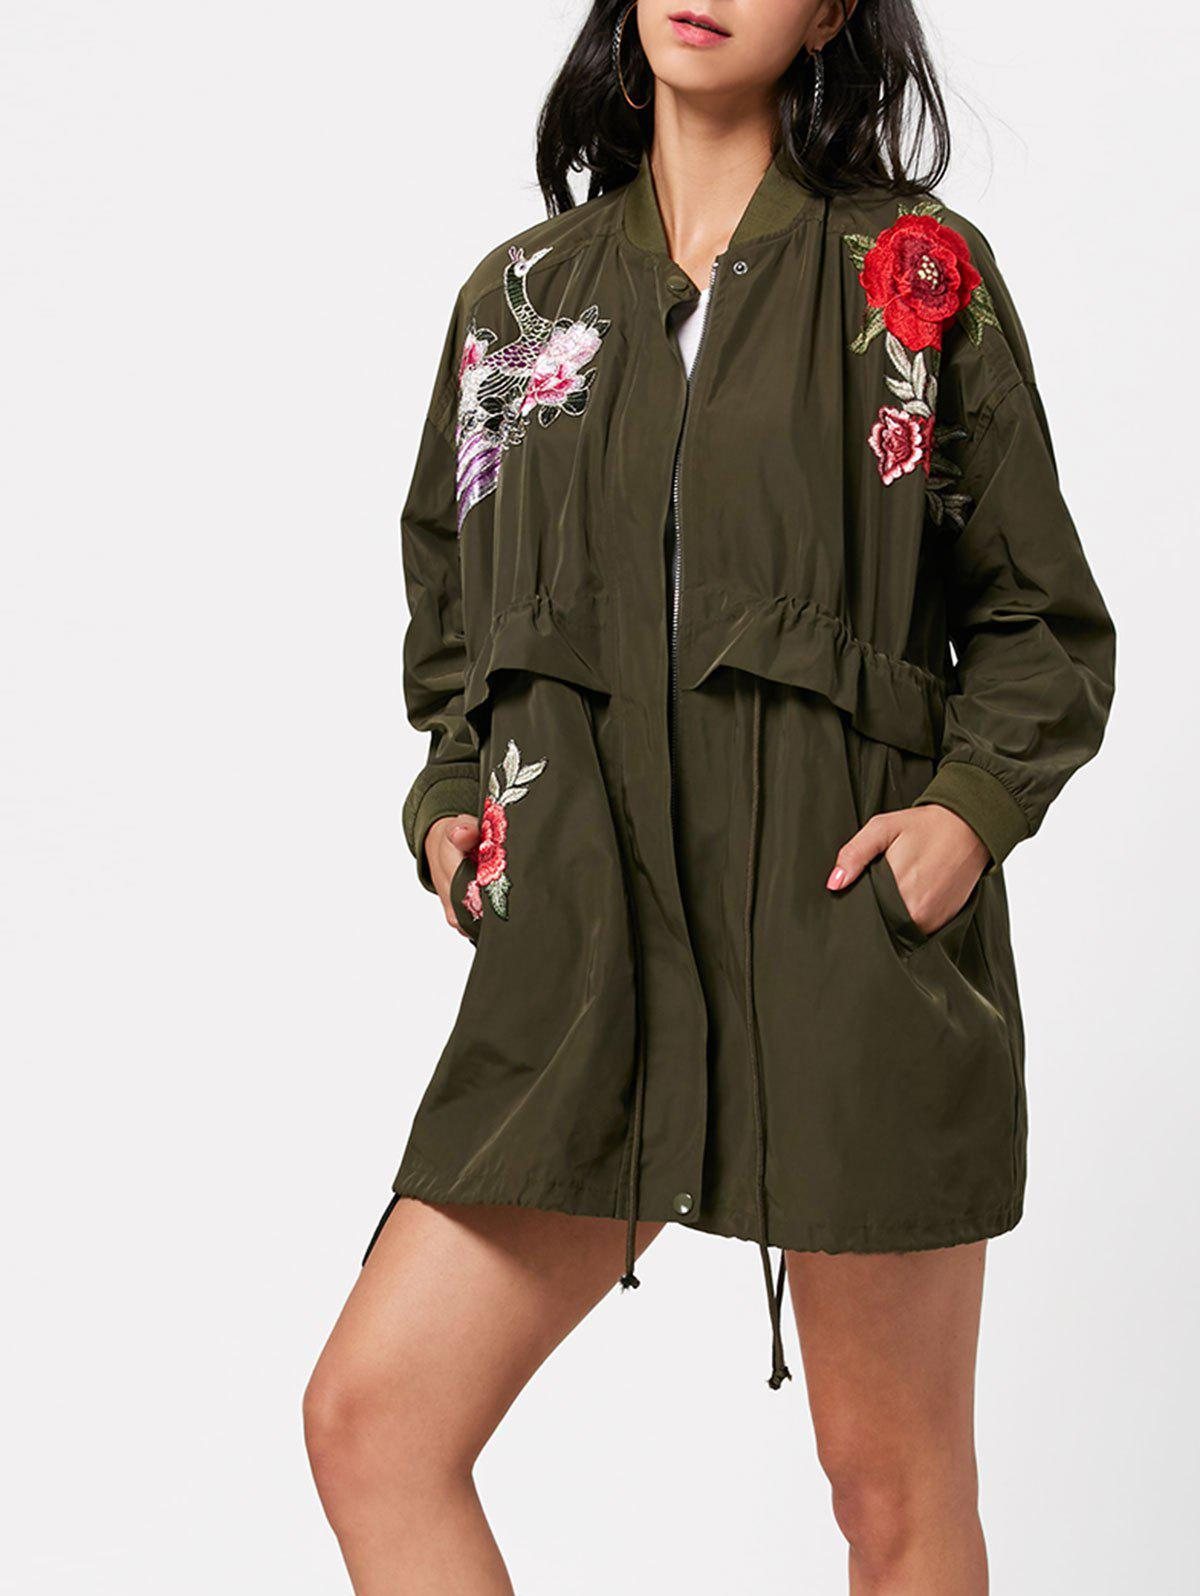 Shop Zip Up Embroidery Coat with Pocket